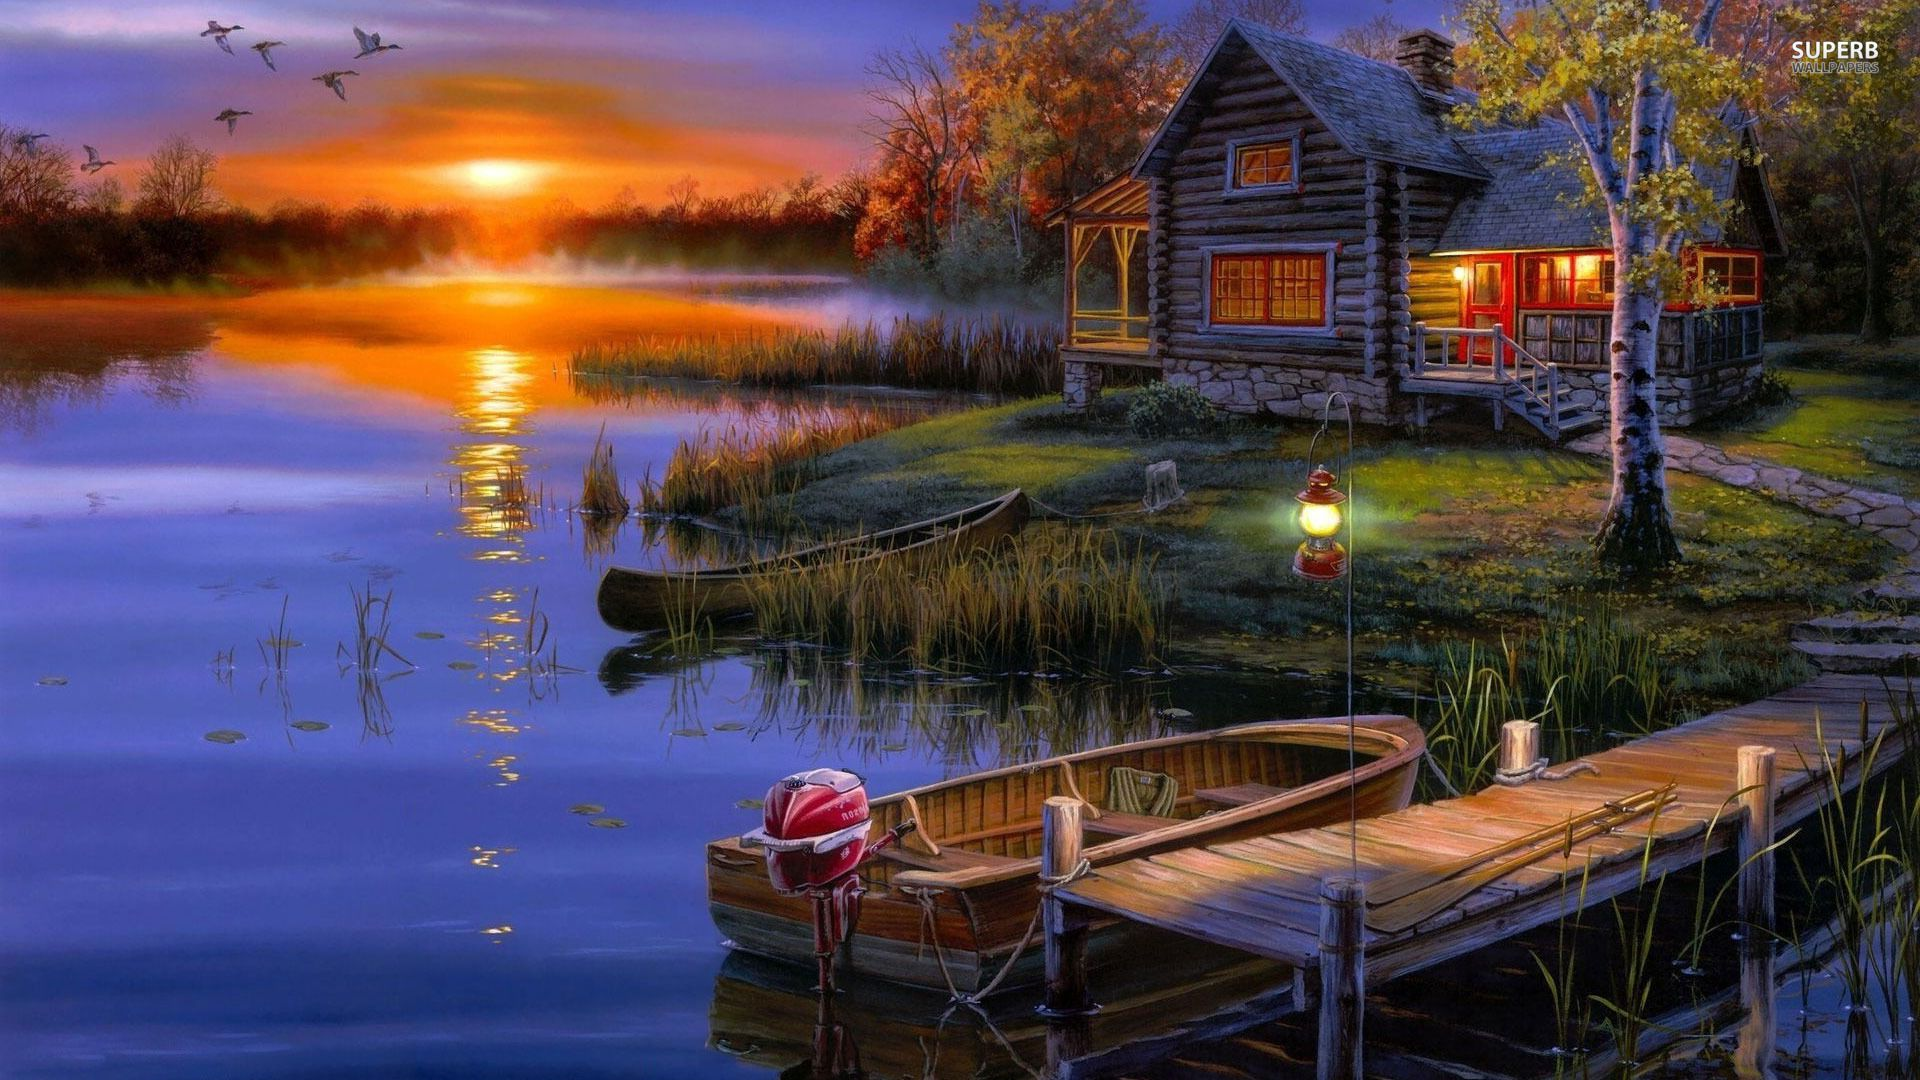 Autumn sunset at the lakeside house wallpaper - Fantasy wallpapers .